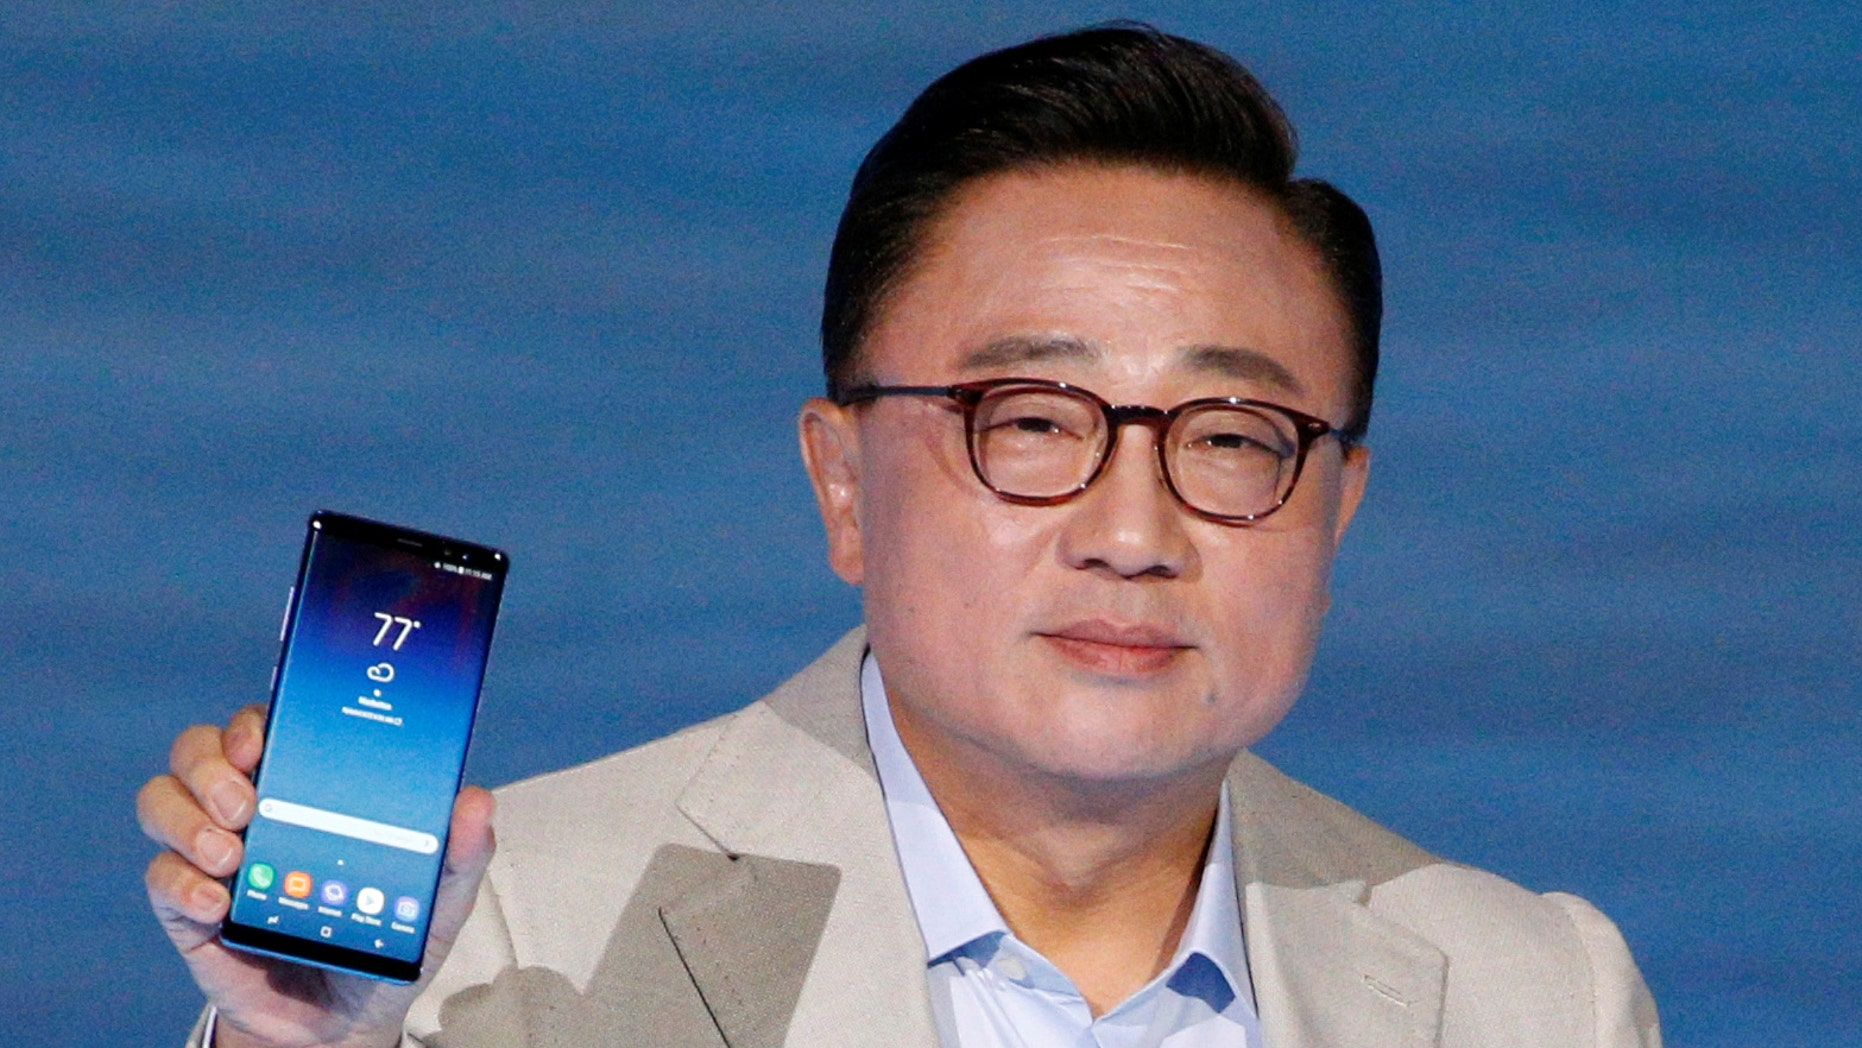 D.J. Koh, president of Samsung Electronics' Mobile Communications holds the Galaxy Note 8 smartphone during a launch event in New York City, U.S., August 23, 2017. (REUTERS/Brendan McDermid)